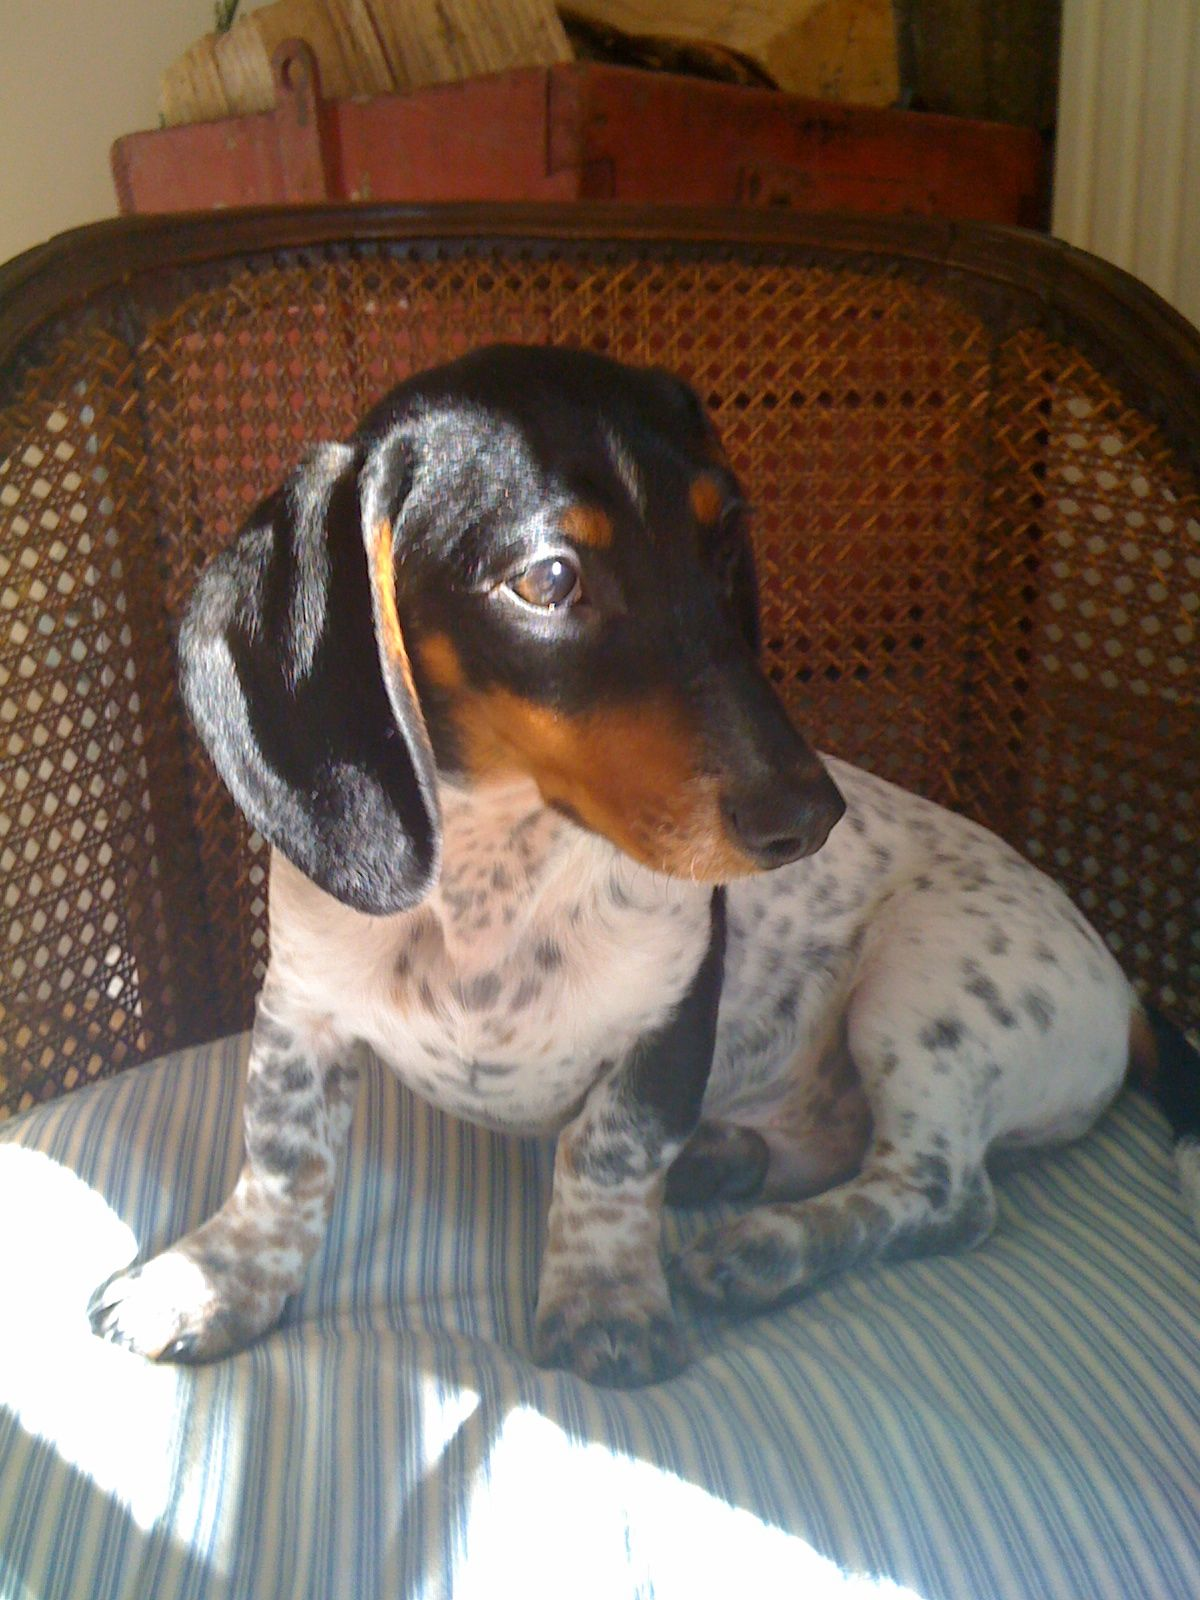 Dapple Double Dapple Piebald Dachshunds Are So Pretty Piebald